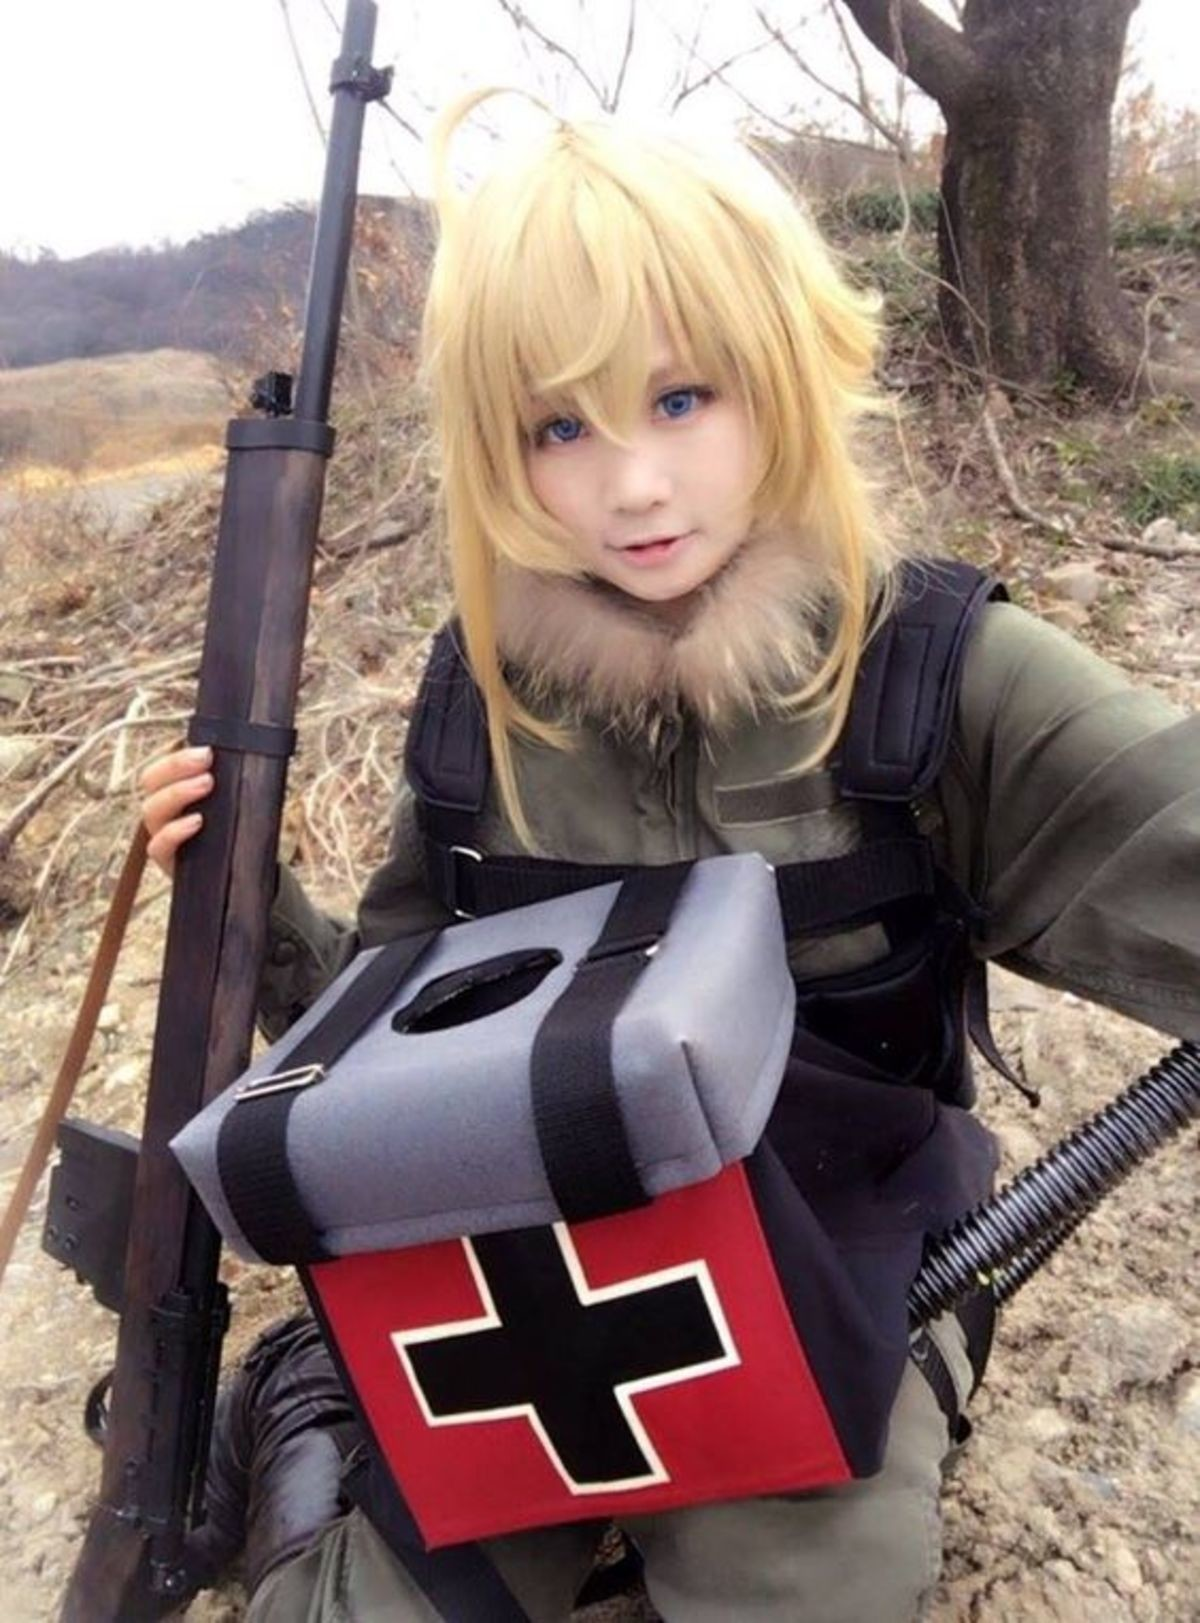 Real Tanya. .. Just noticed there's a tanyatheevil channel.